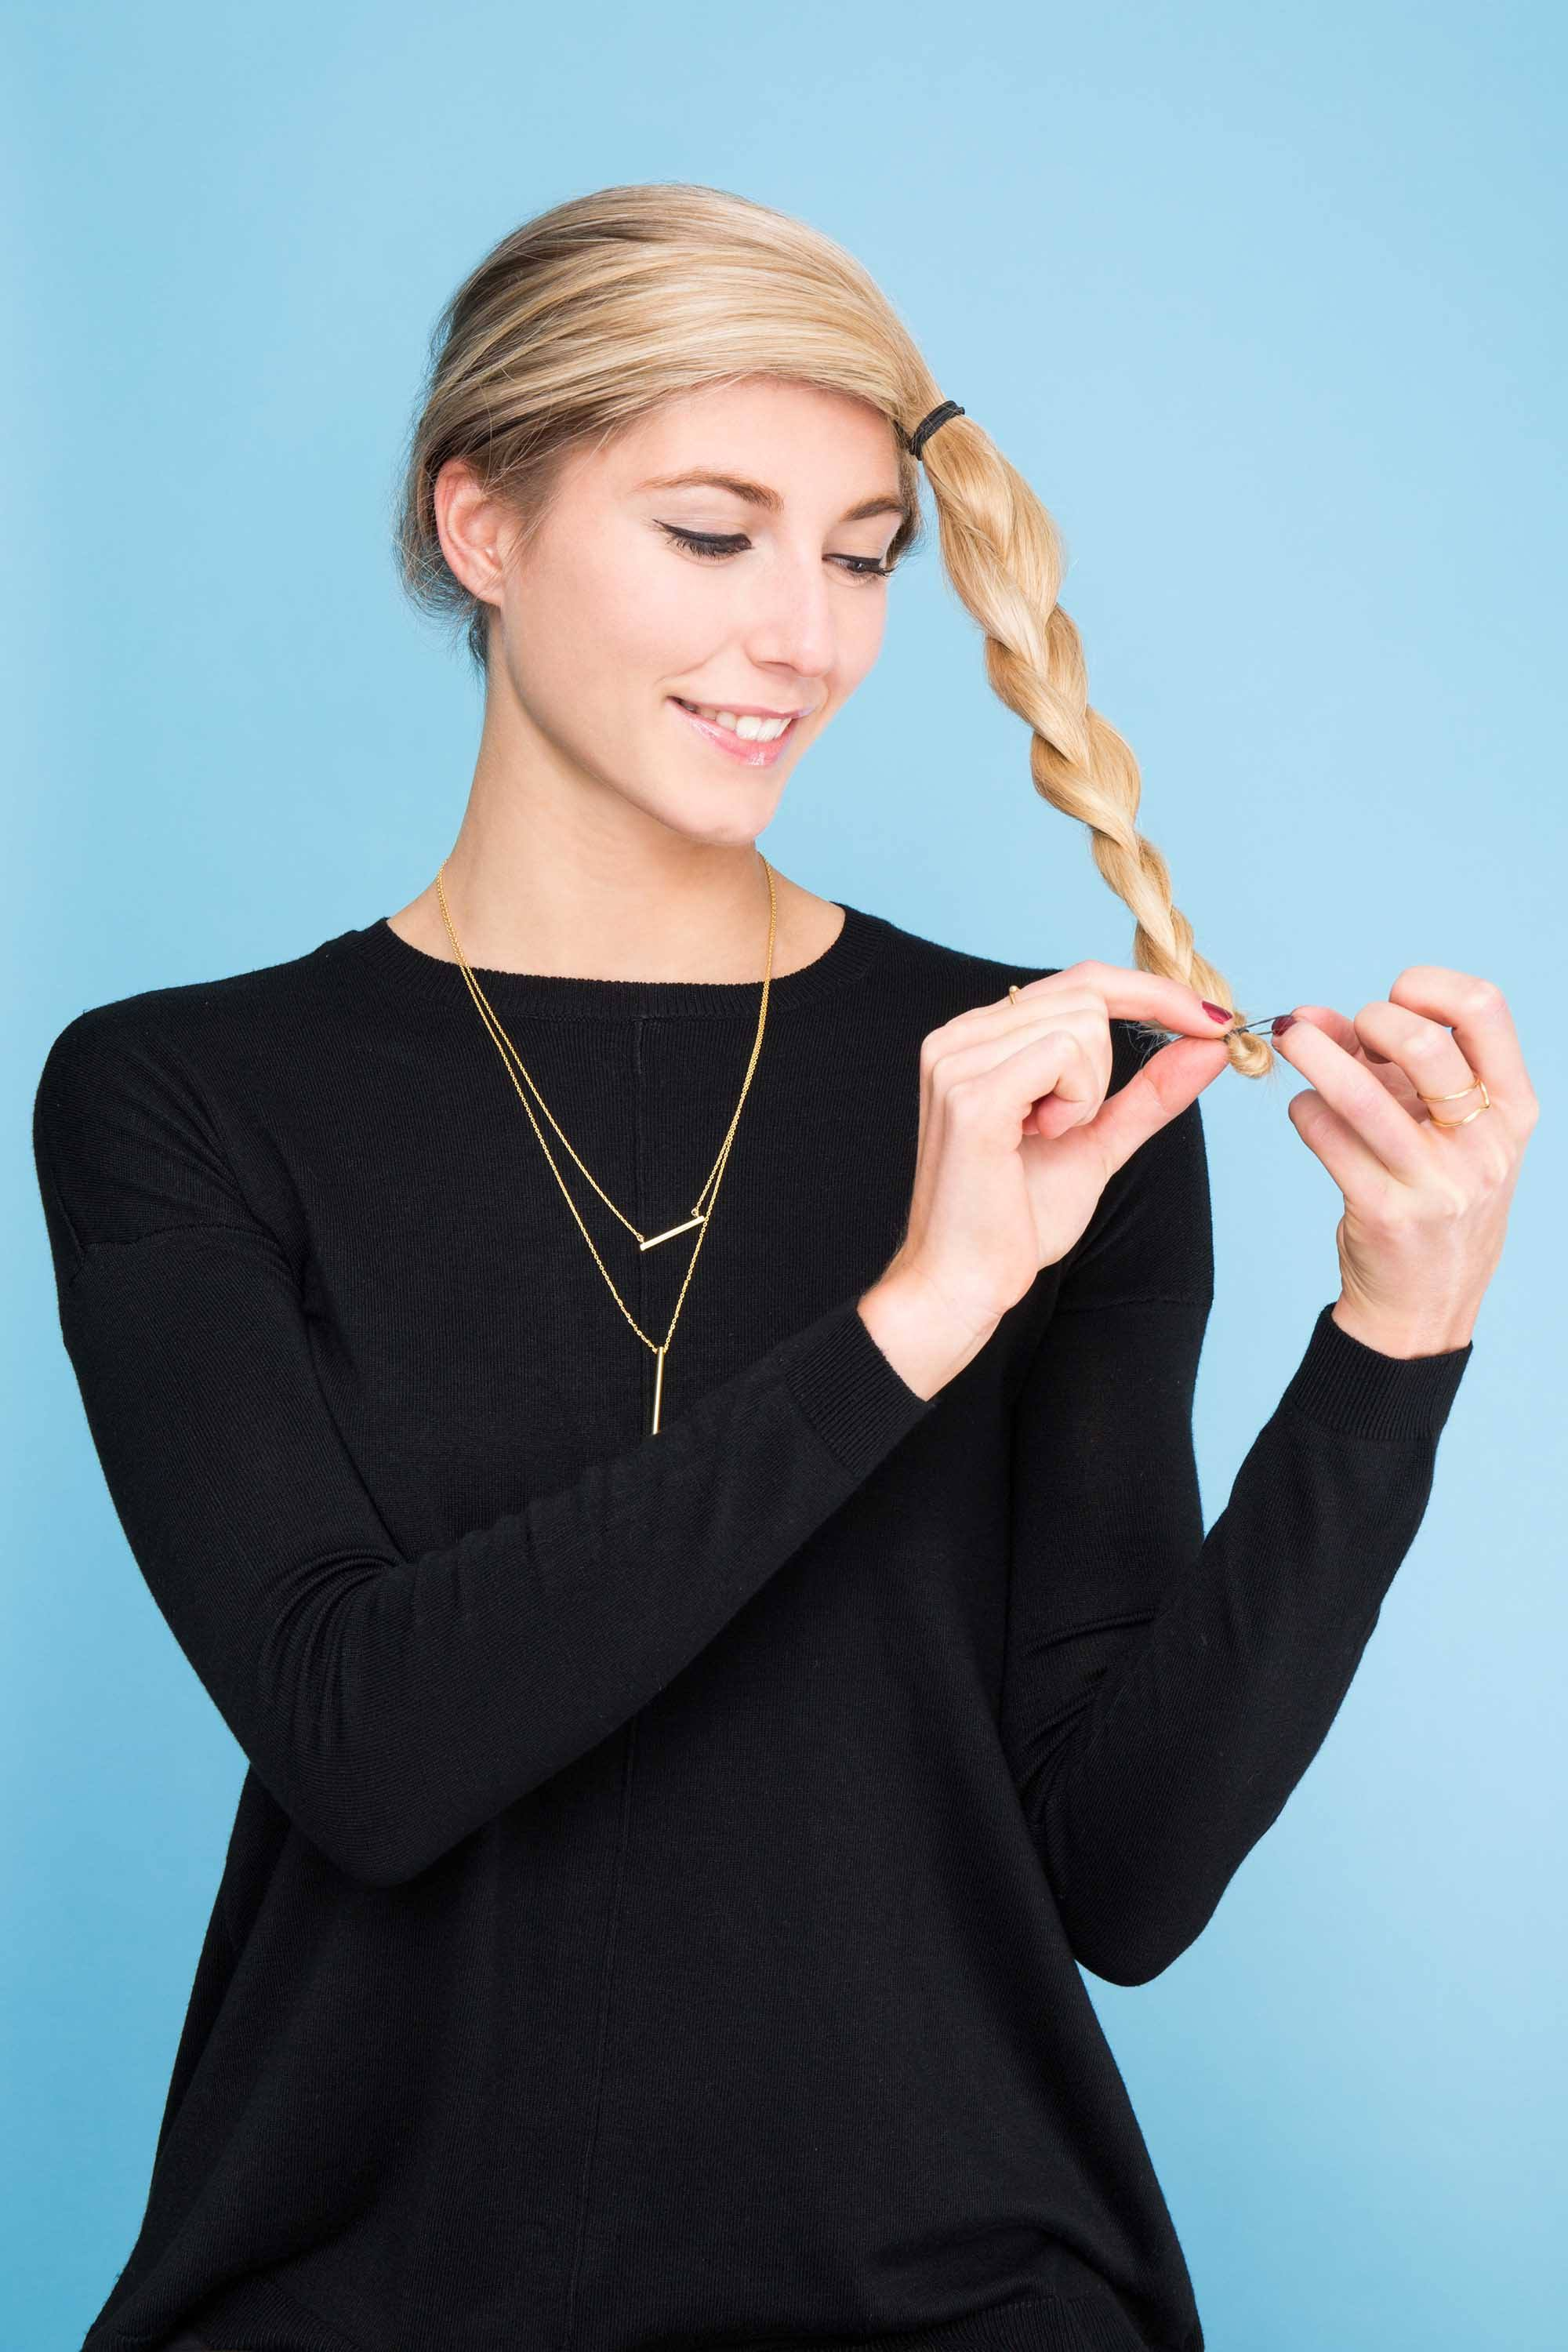 Tutorial: How to Make Easy Crown Braids